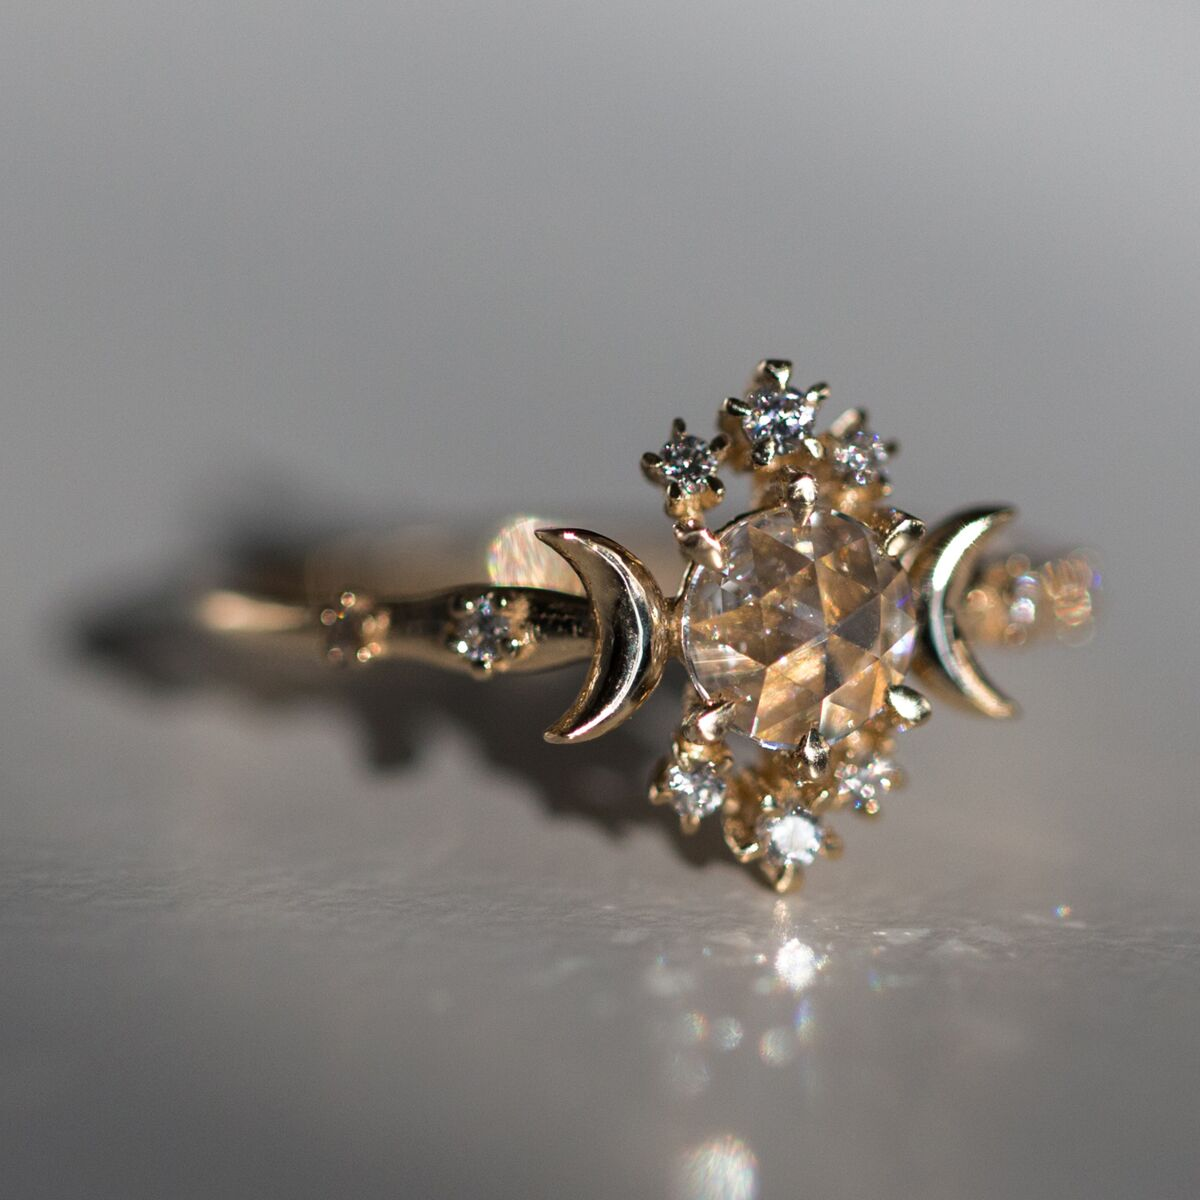 Wandering Star Ring, Rose Cut Diamond image